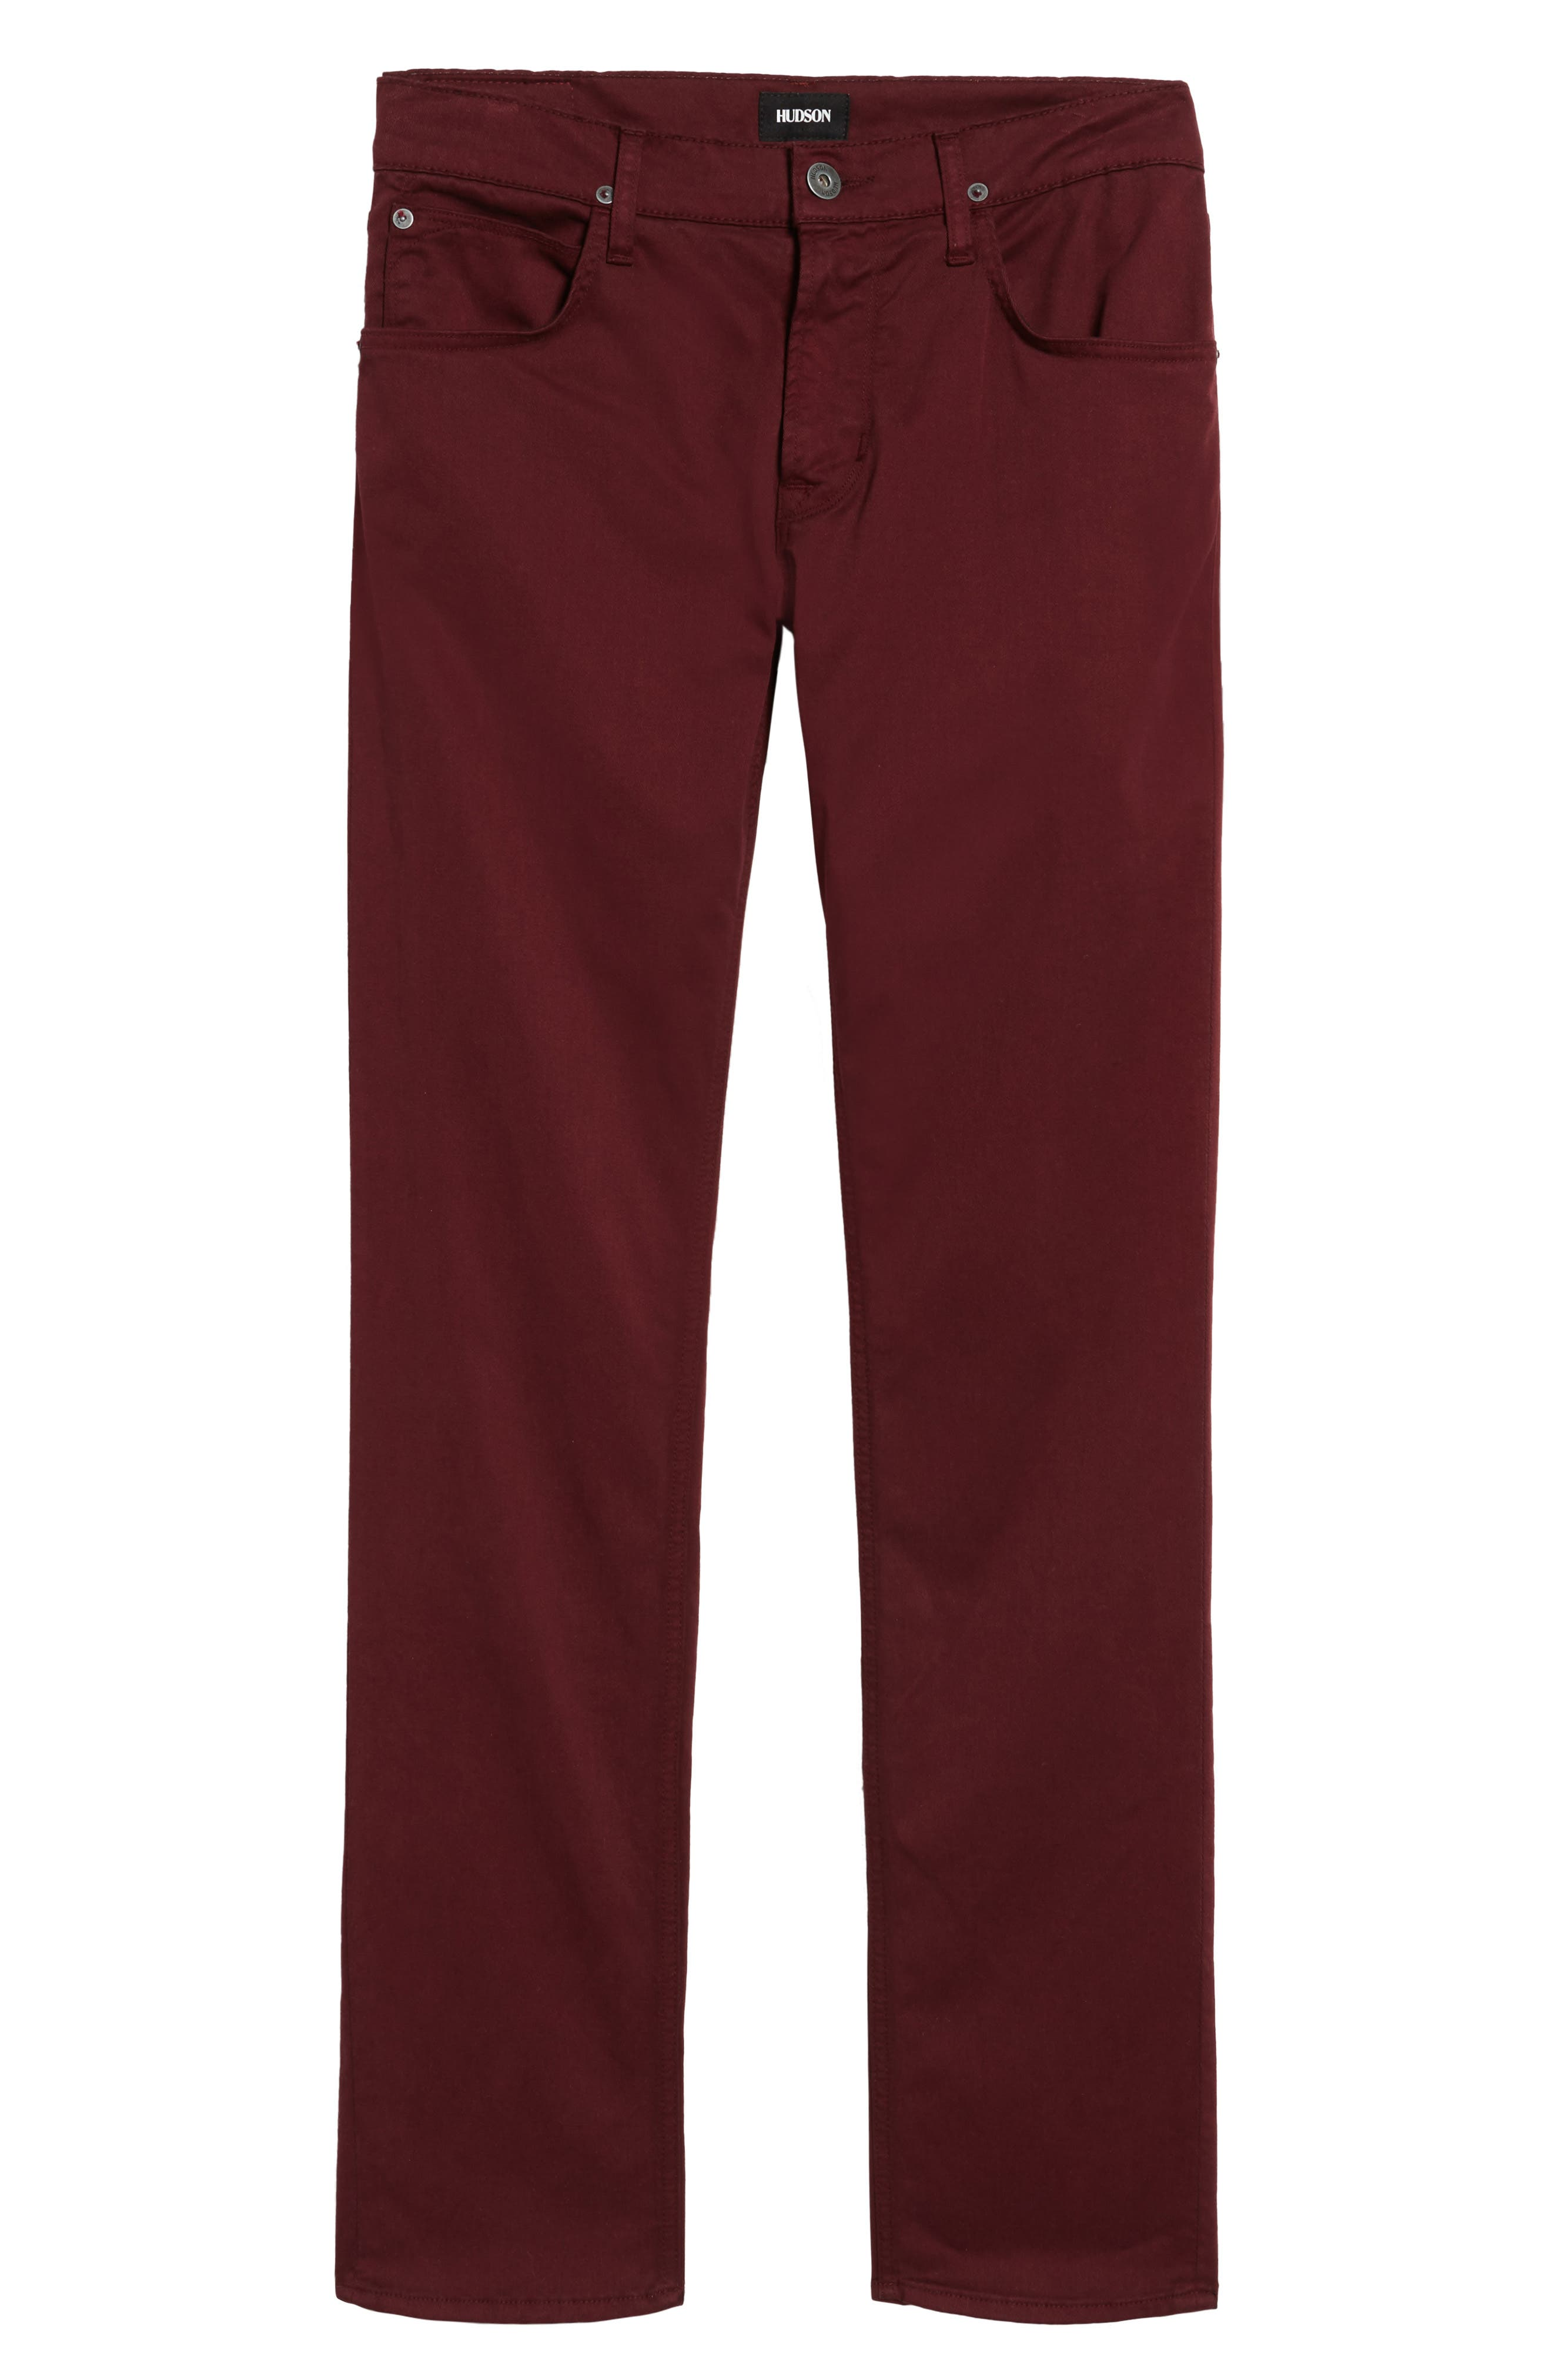 Blake Slim Fit Jeans,                             Alternate thumbnail 6, color,                             BURGUNDY